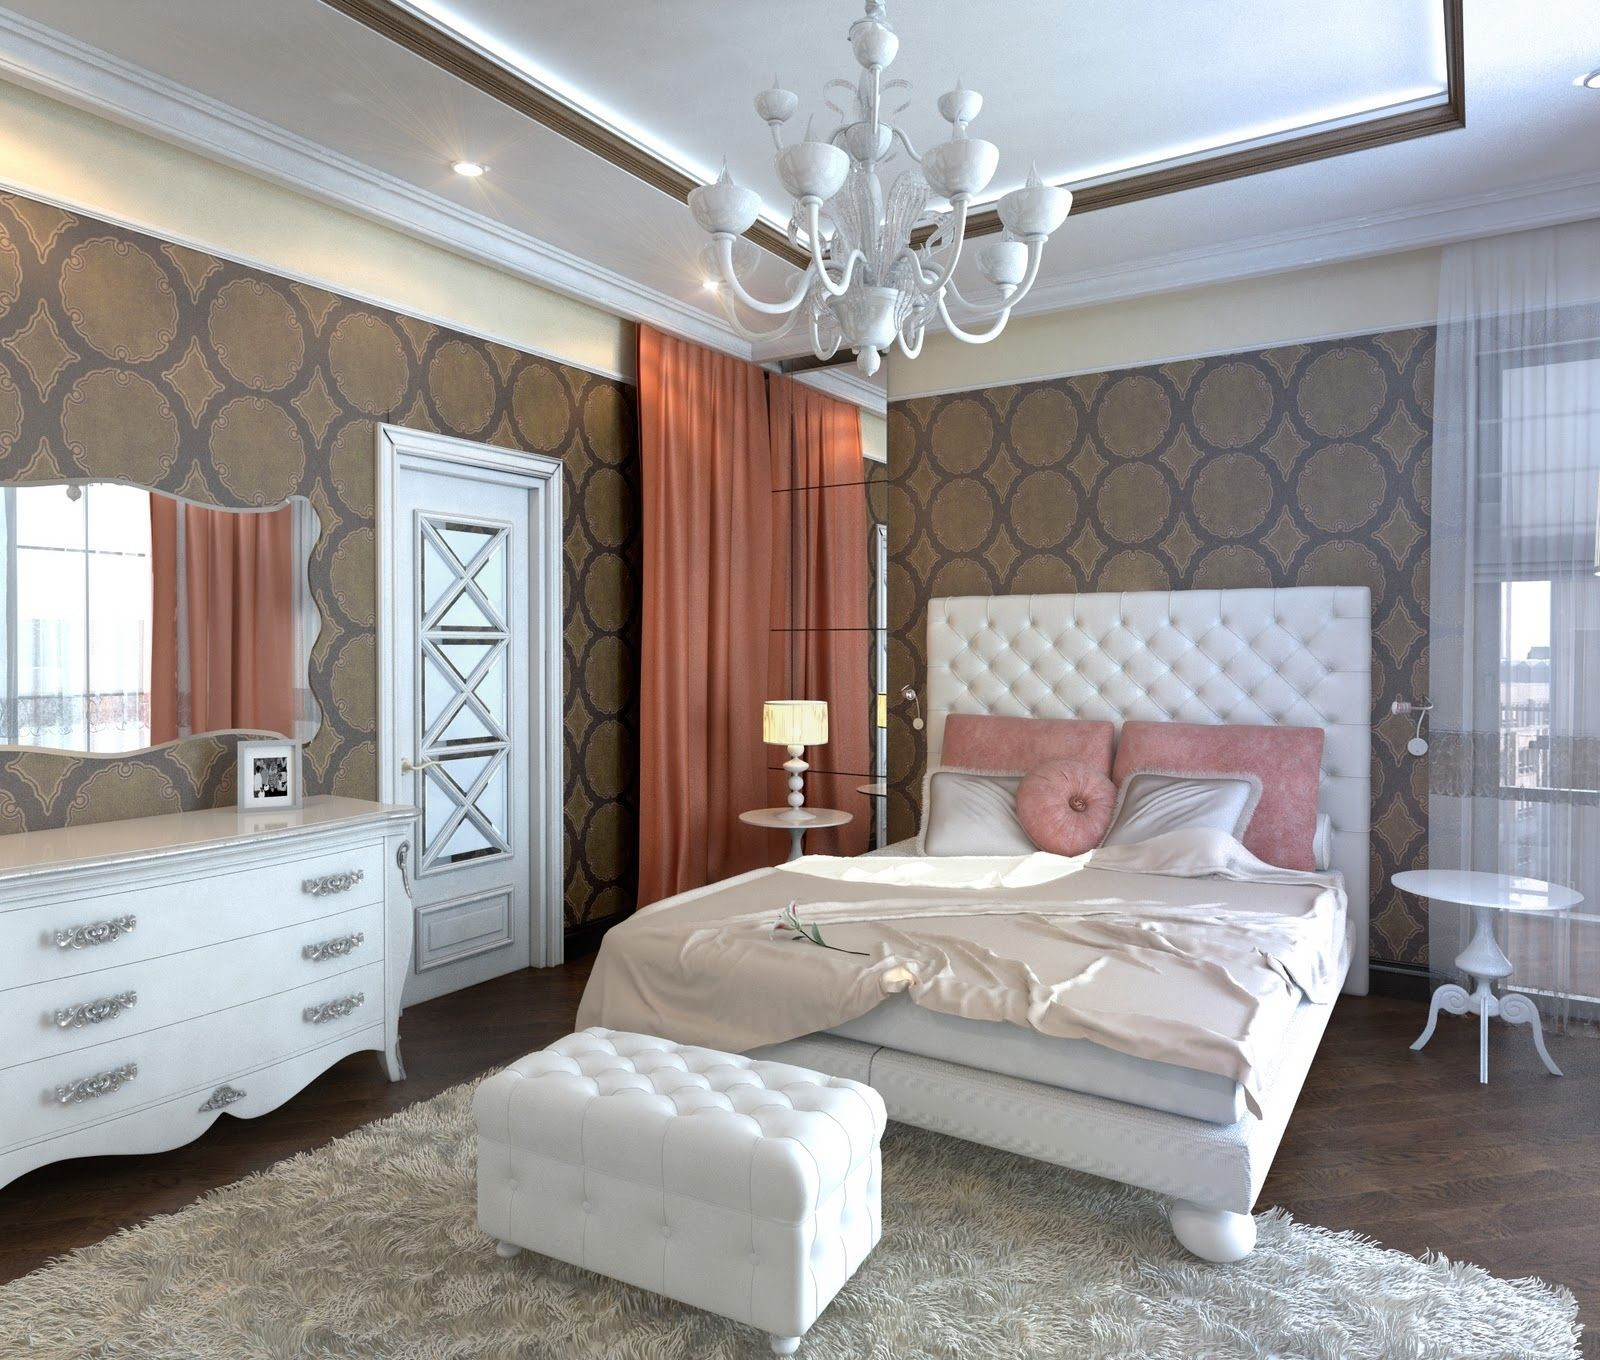 Art Deco Bedroom Design Ideas Art Deco Bedroom Design Ideas Free Inspiration Art Deco Bedroom Design Ideas Inspiration Design